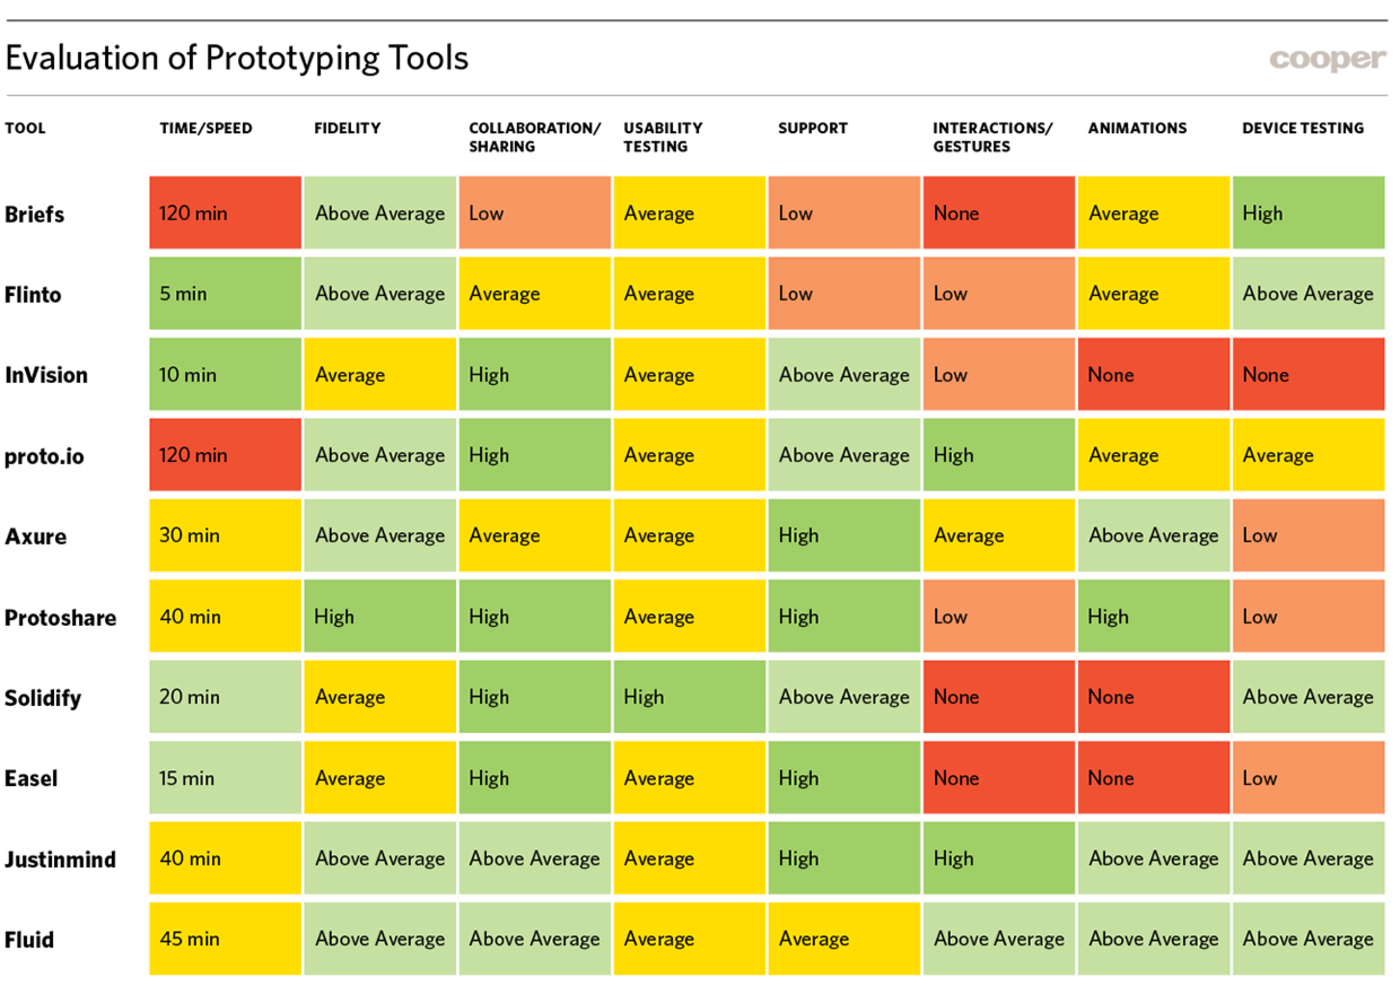 Evaluation of prototyping tools